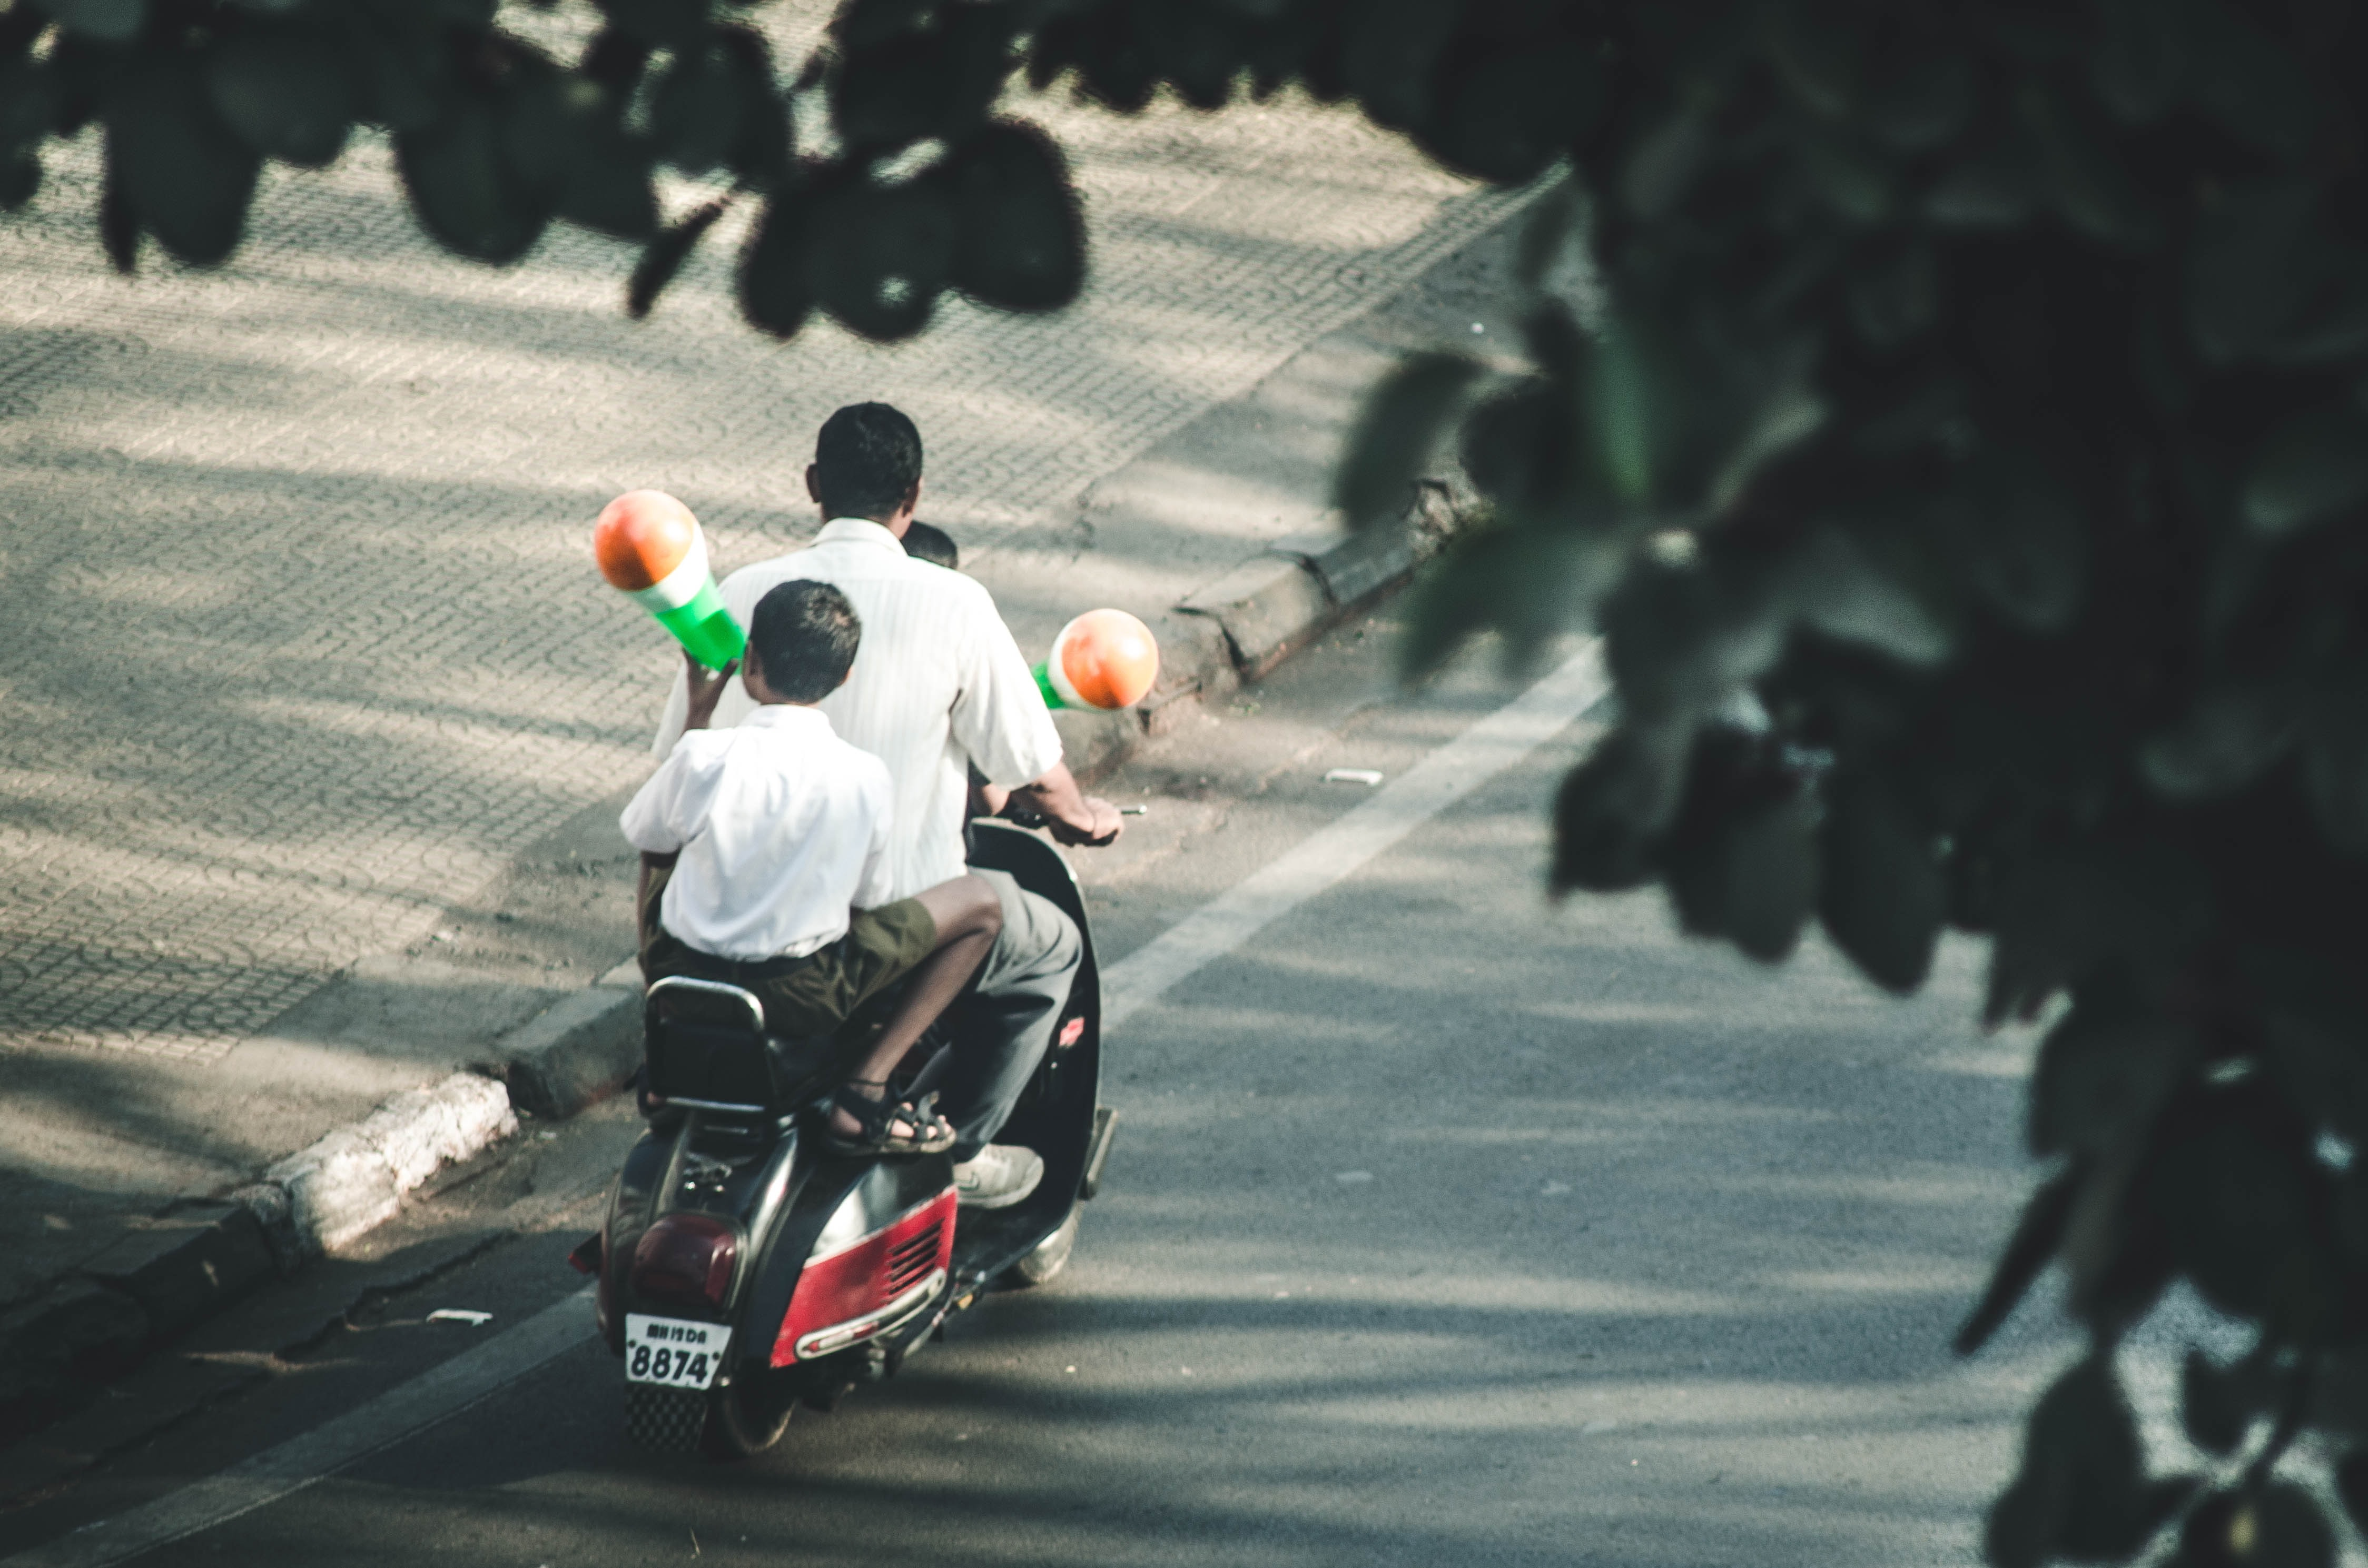 man and boys riding on motorcycle